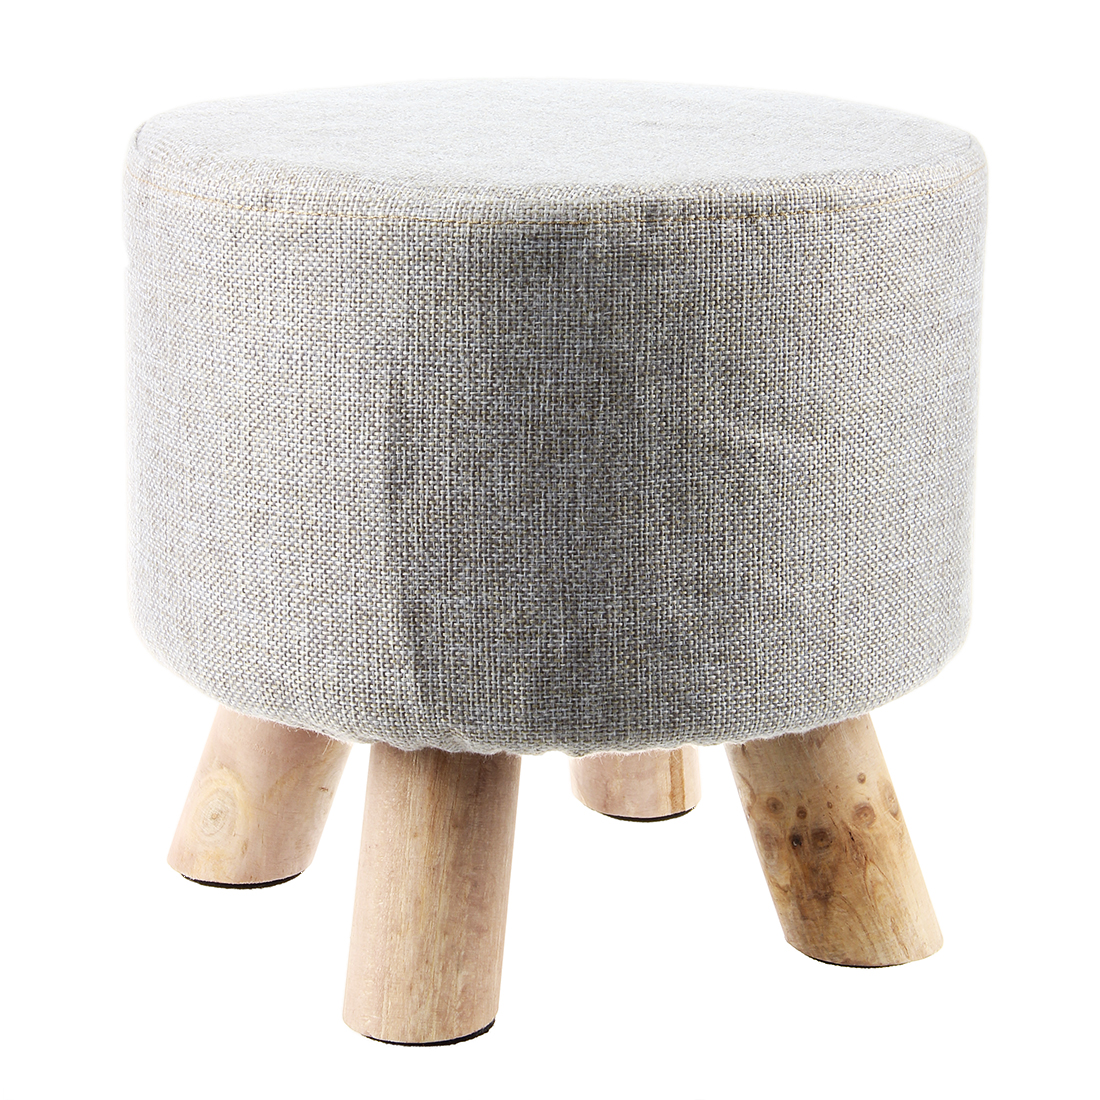 Fabric, Wooden, Stool, Upholstered, Luxury, Round